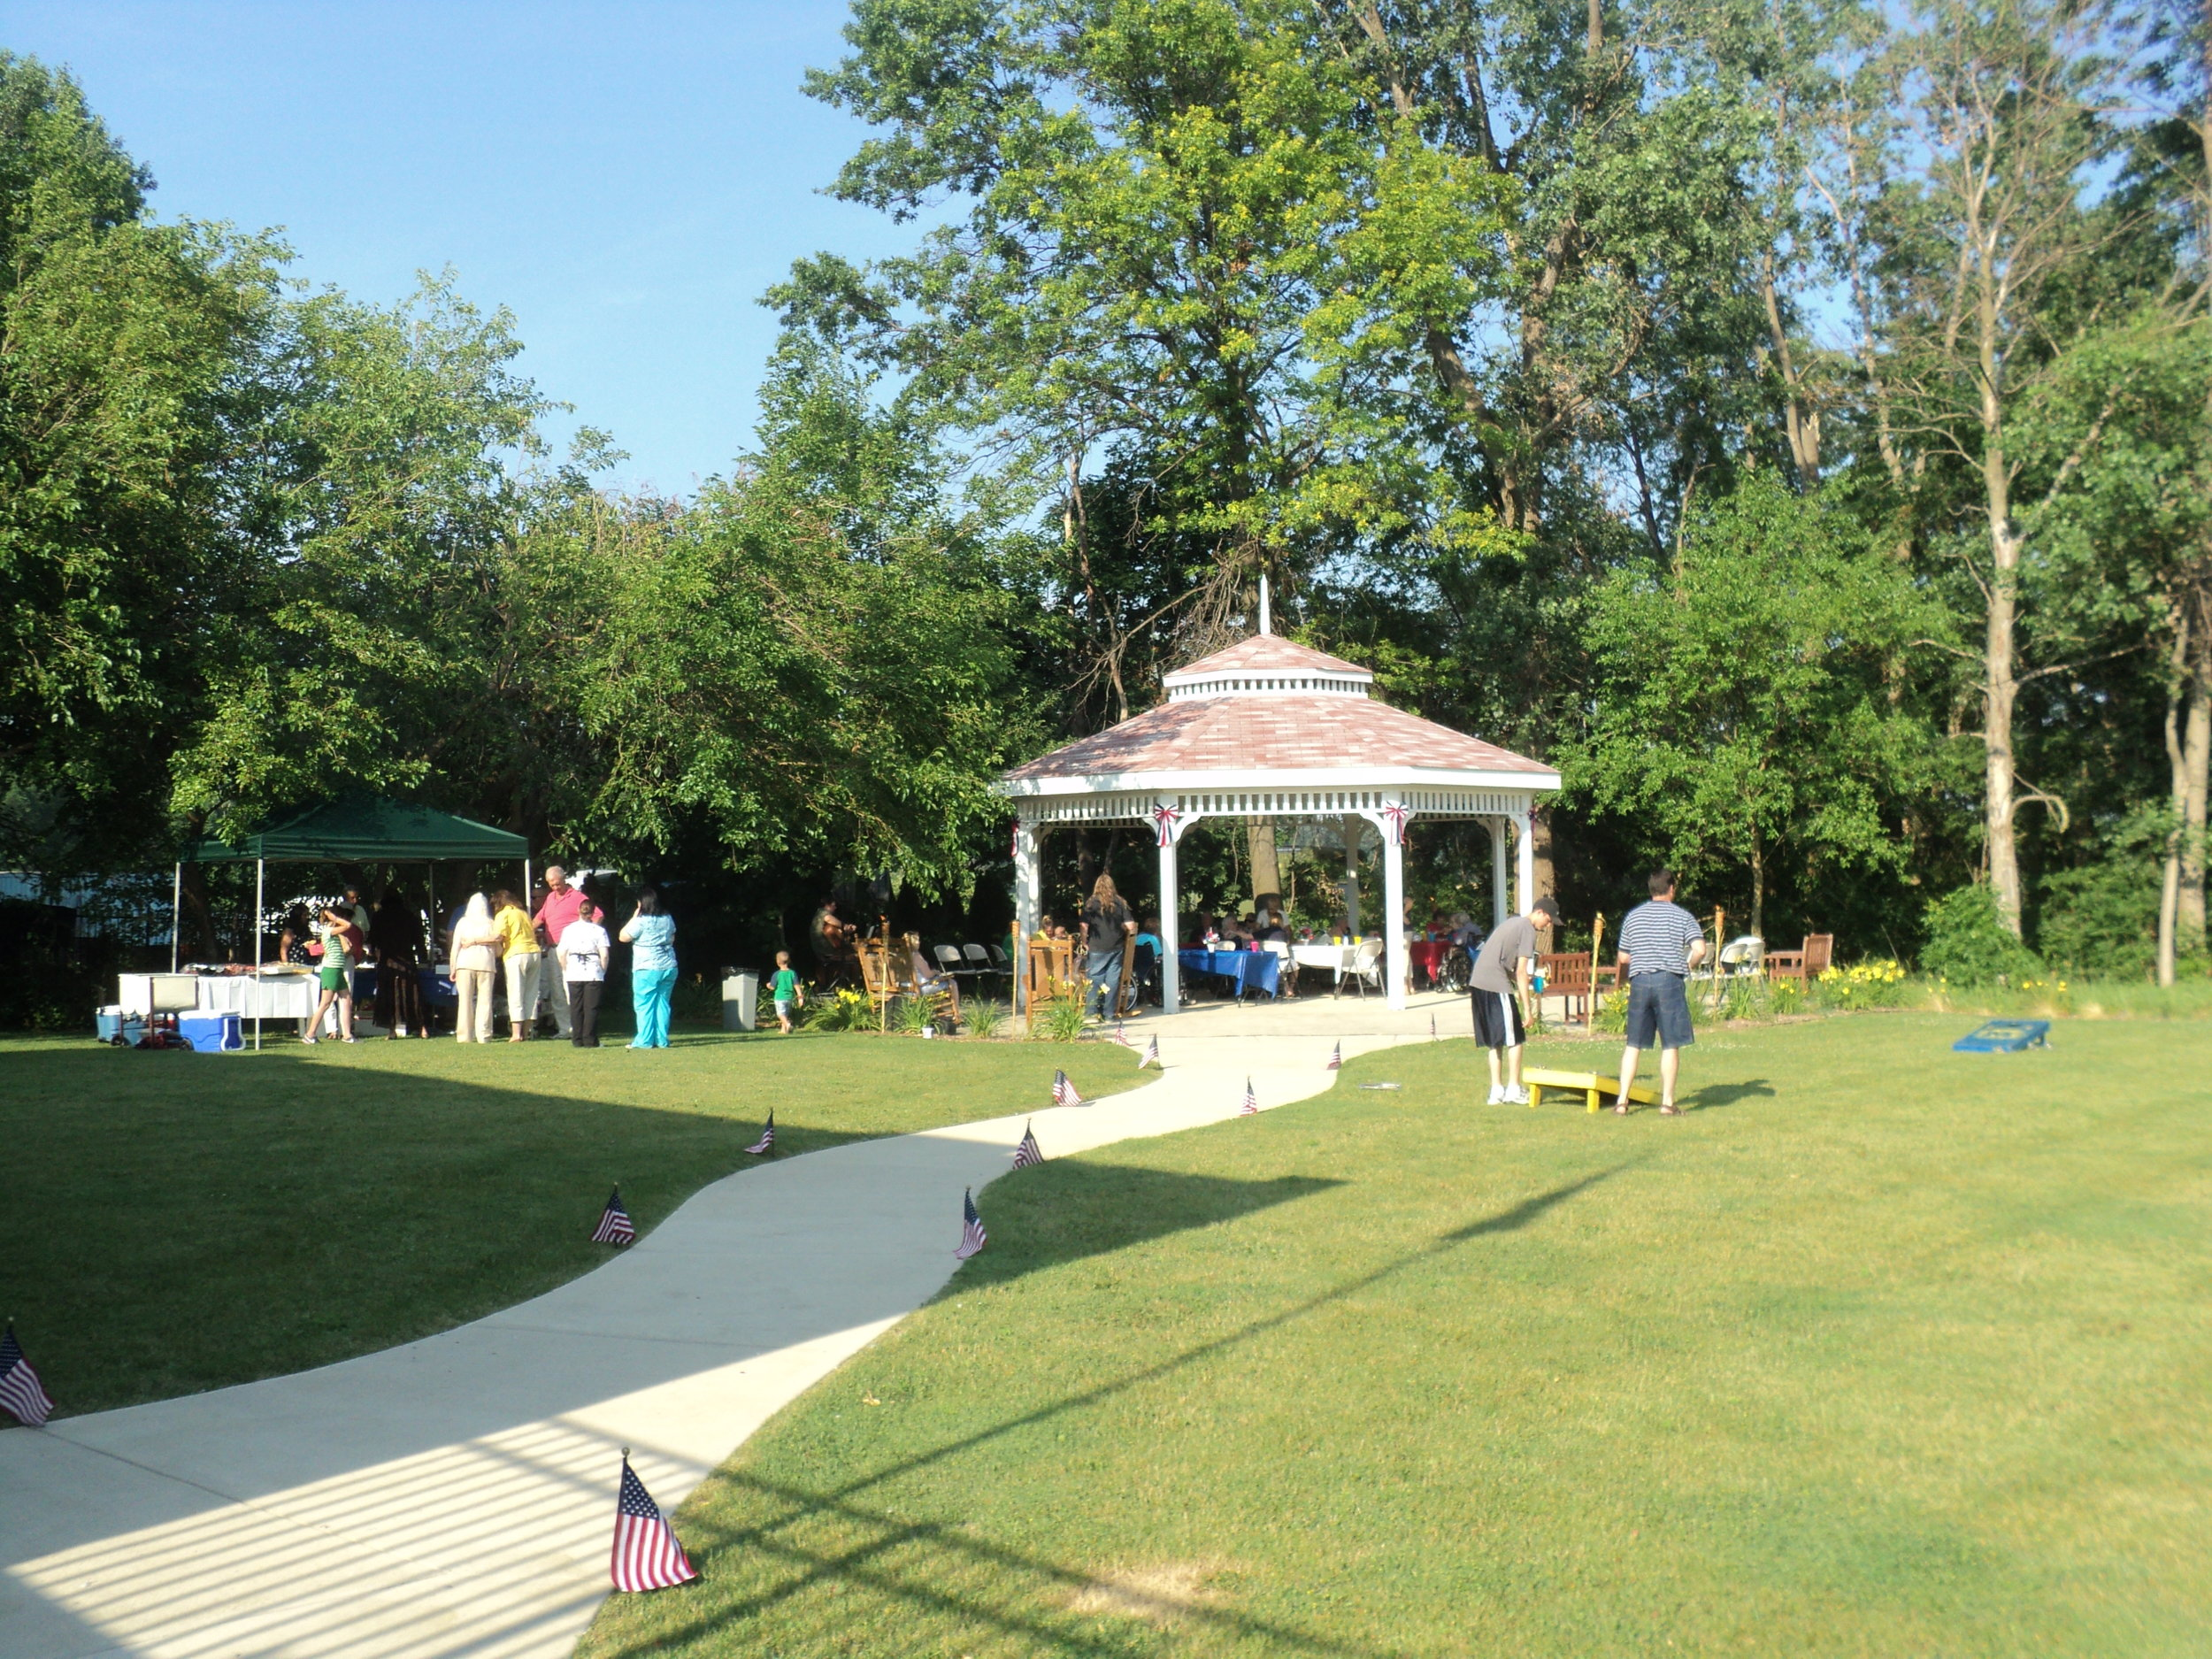 Our gazebo is the perfect spot to enjoy a bbq and shade on a warm summer's day.